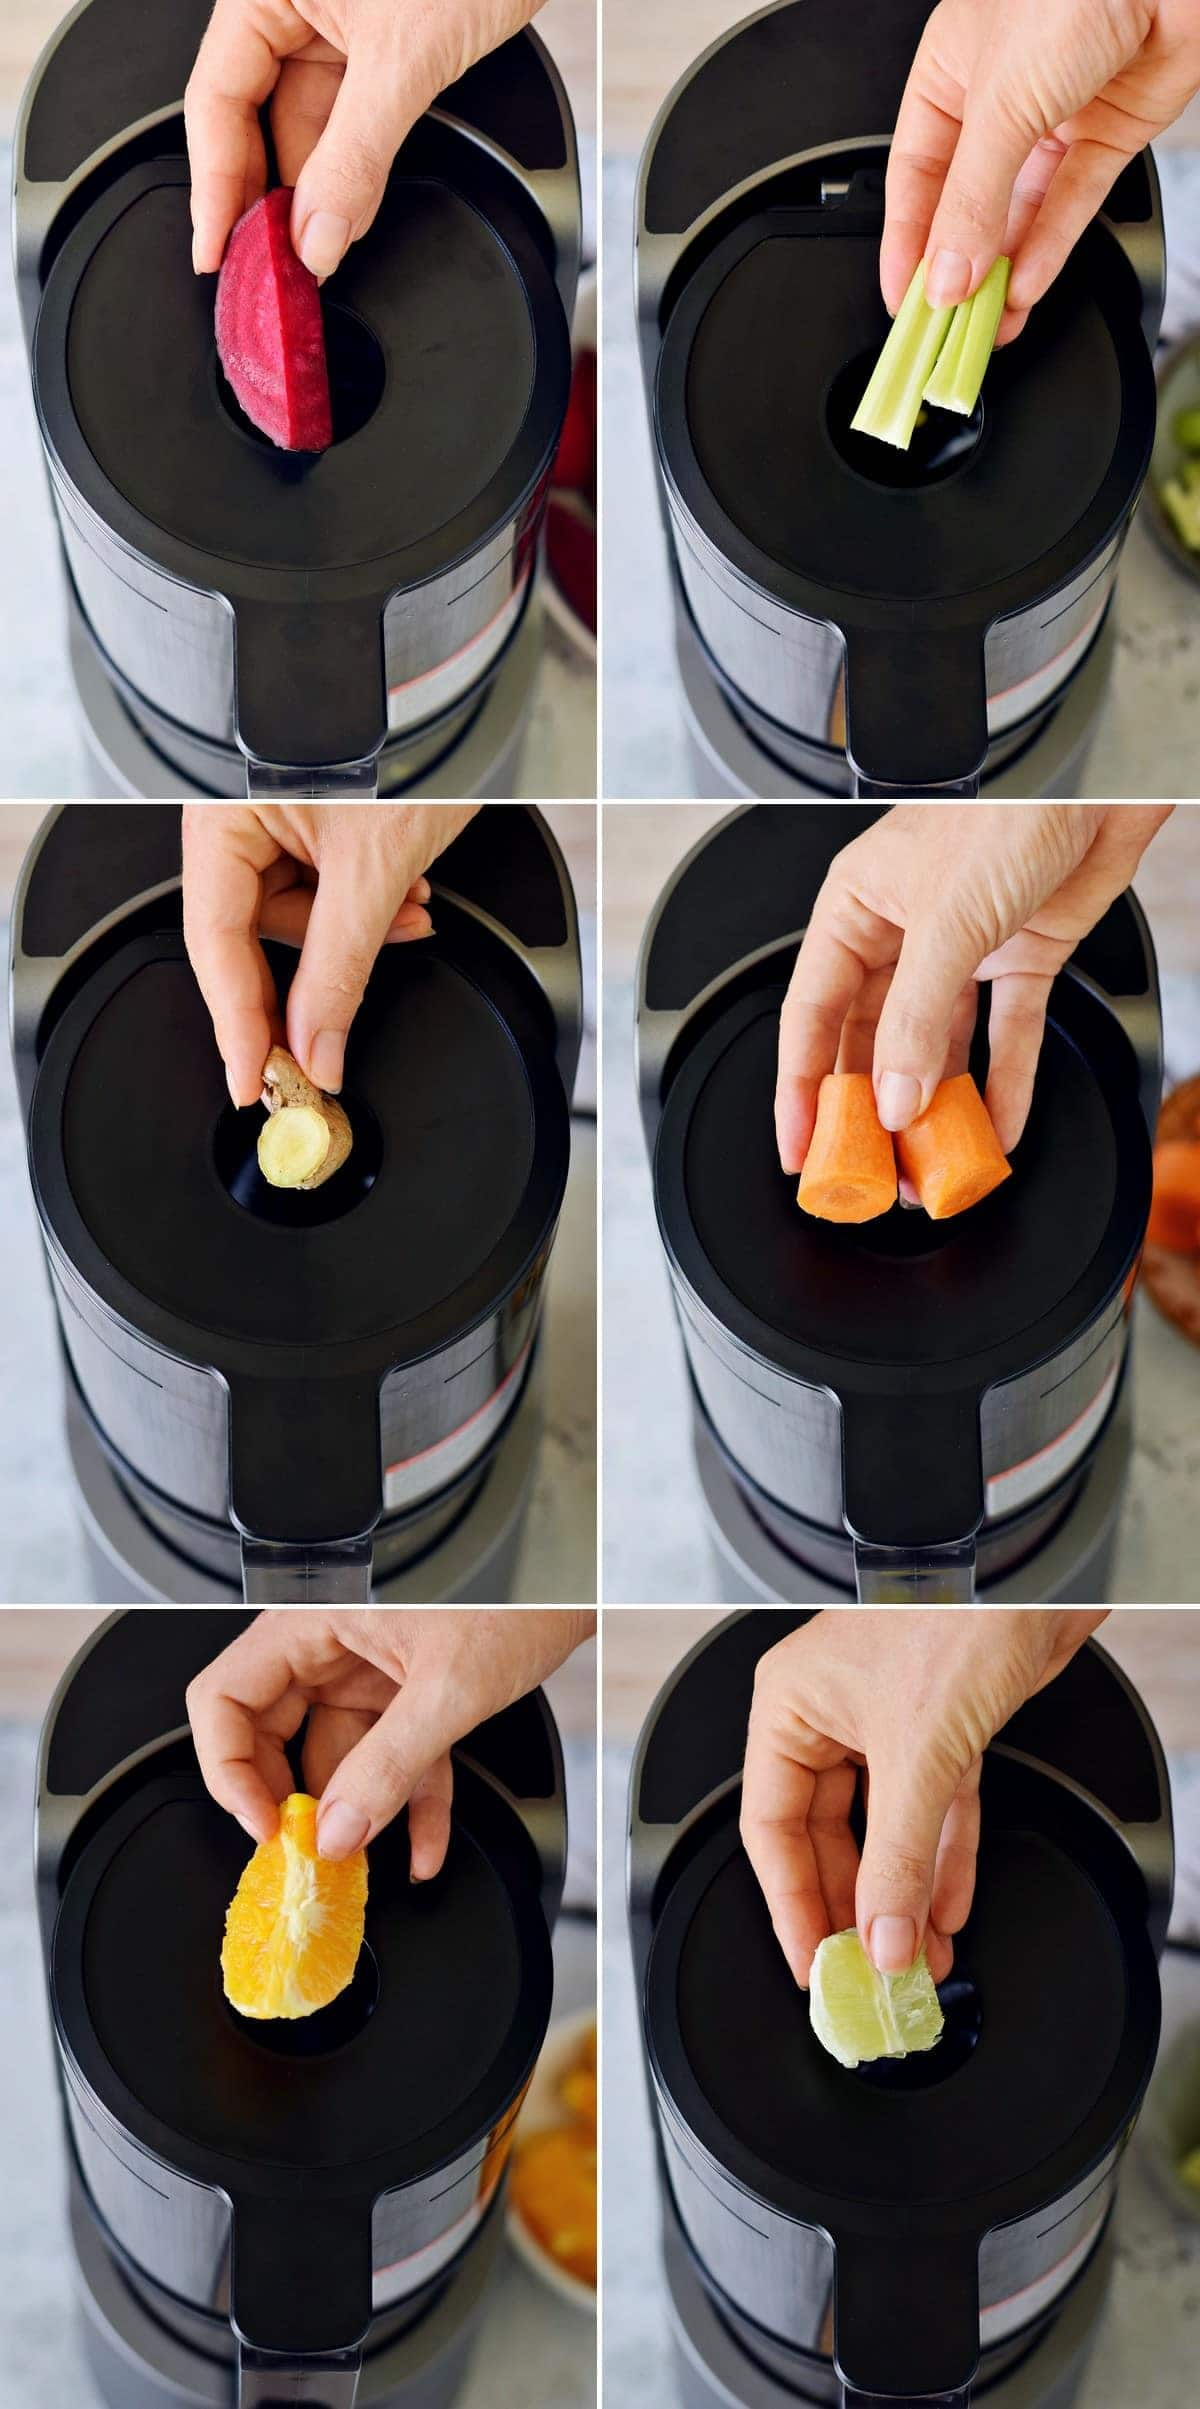 6 step-by-step photos showing how to juice veggies and fruit